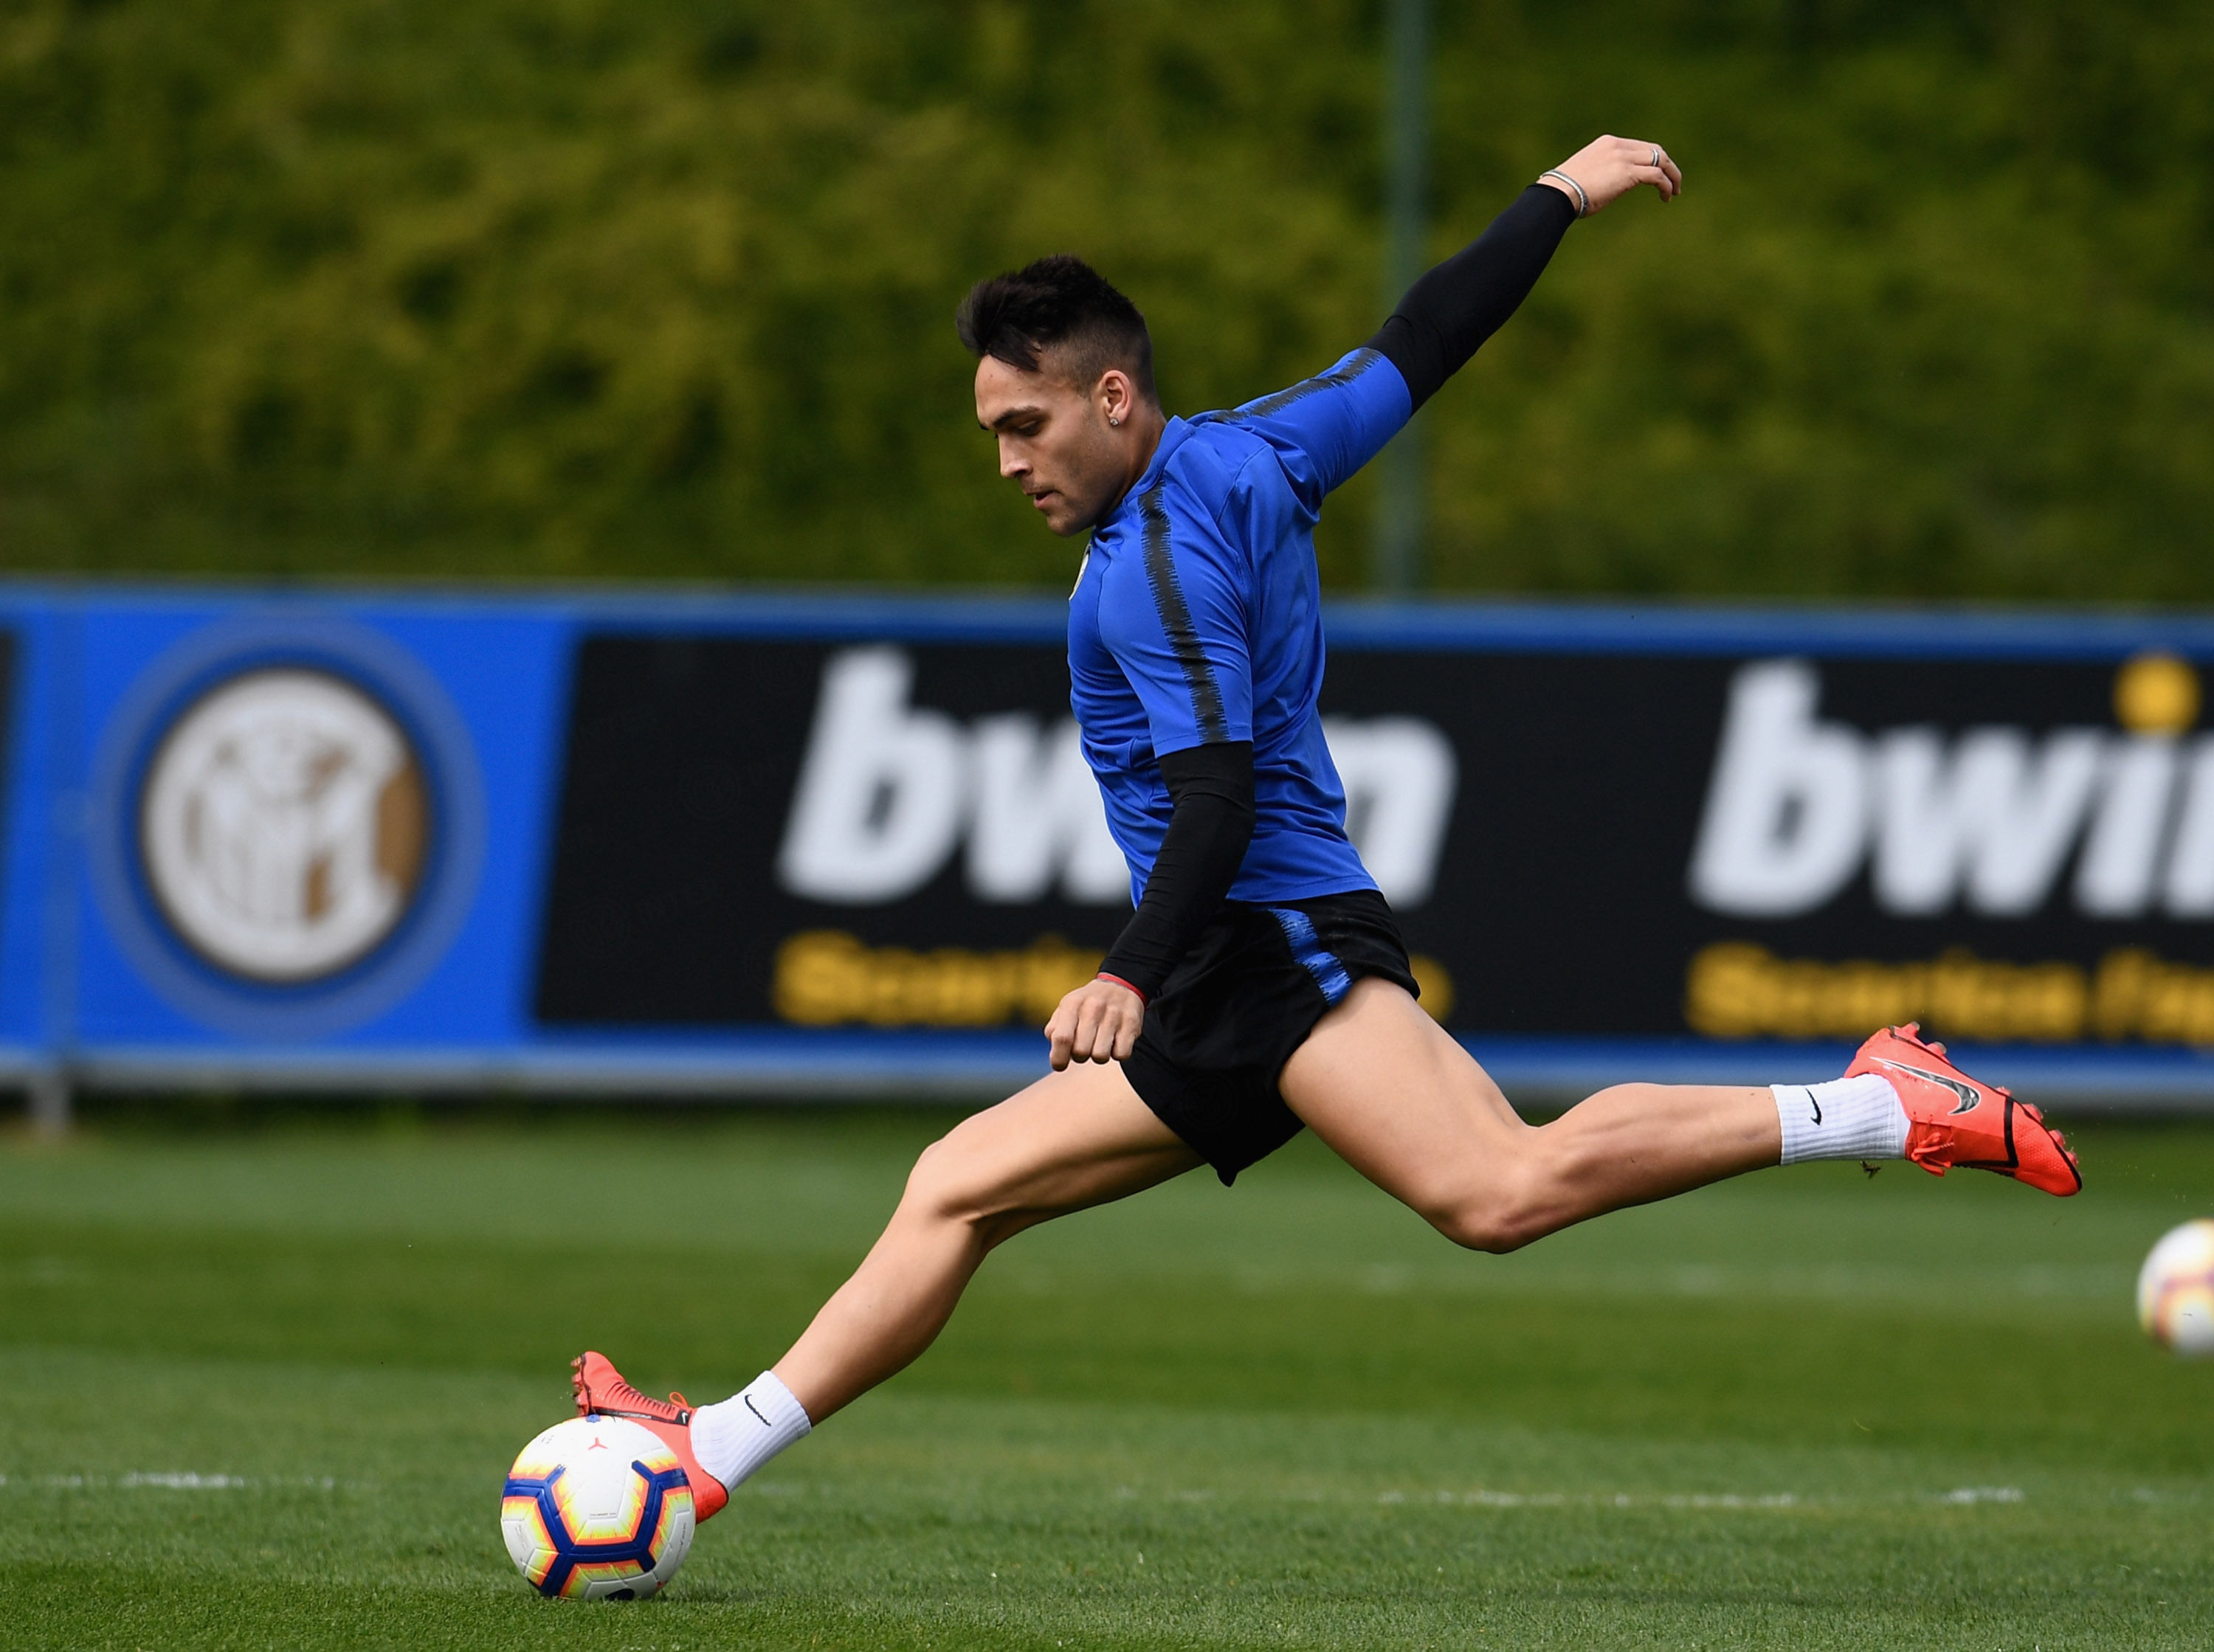 The team train once again ahead of Frosinone vs. Inter